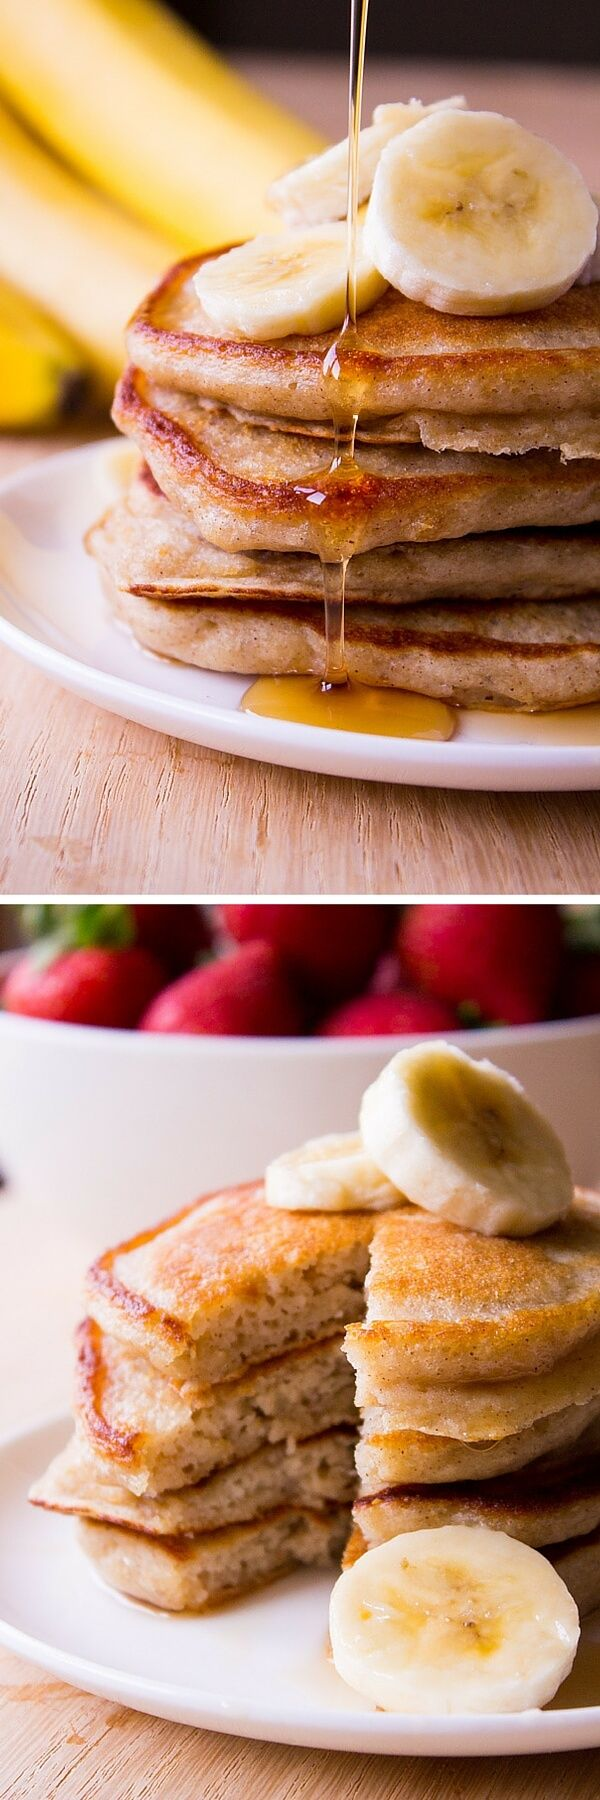 These light & fluffy banana pancakes are like banana bread in pancake form. Super moist, filled with vanilla & cinnamon flavor - Start your morning with this easy recipe!